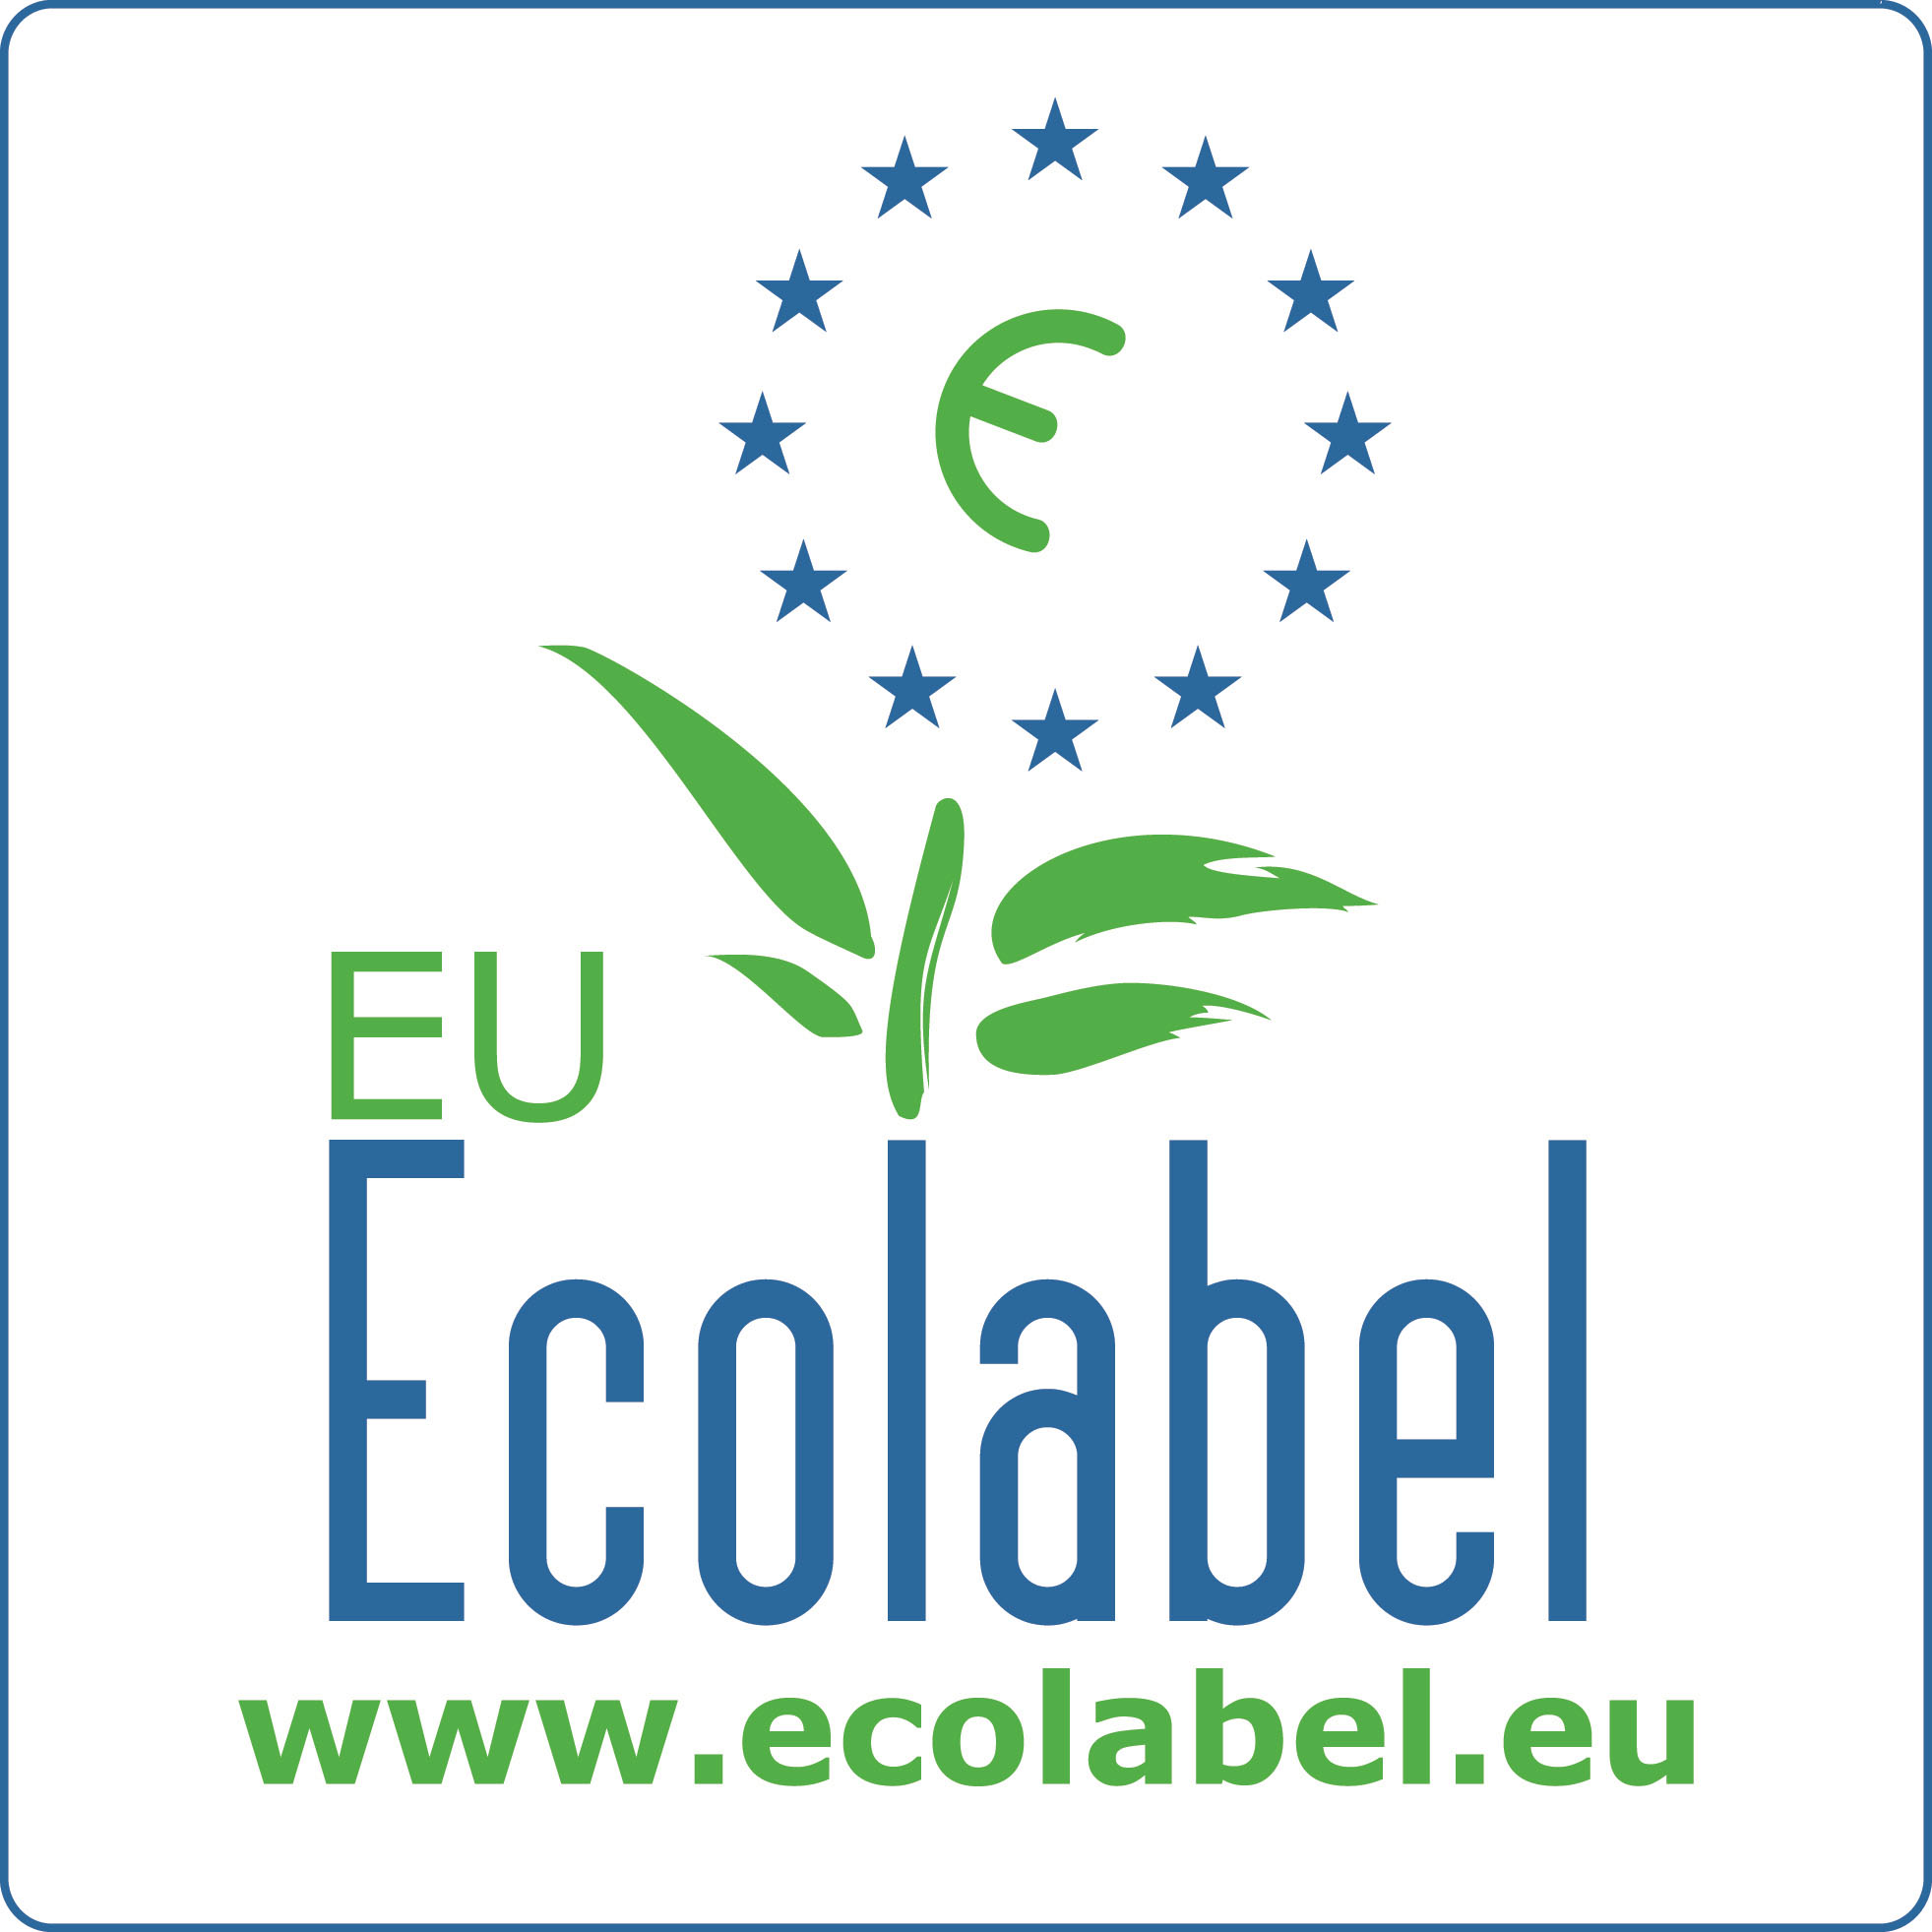 eu ecolabel marketing for products welcome